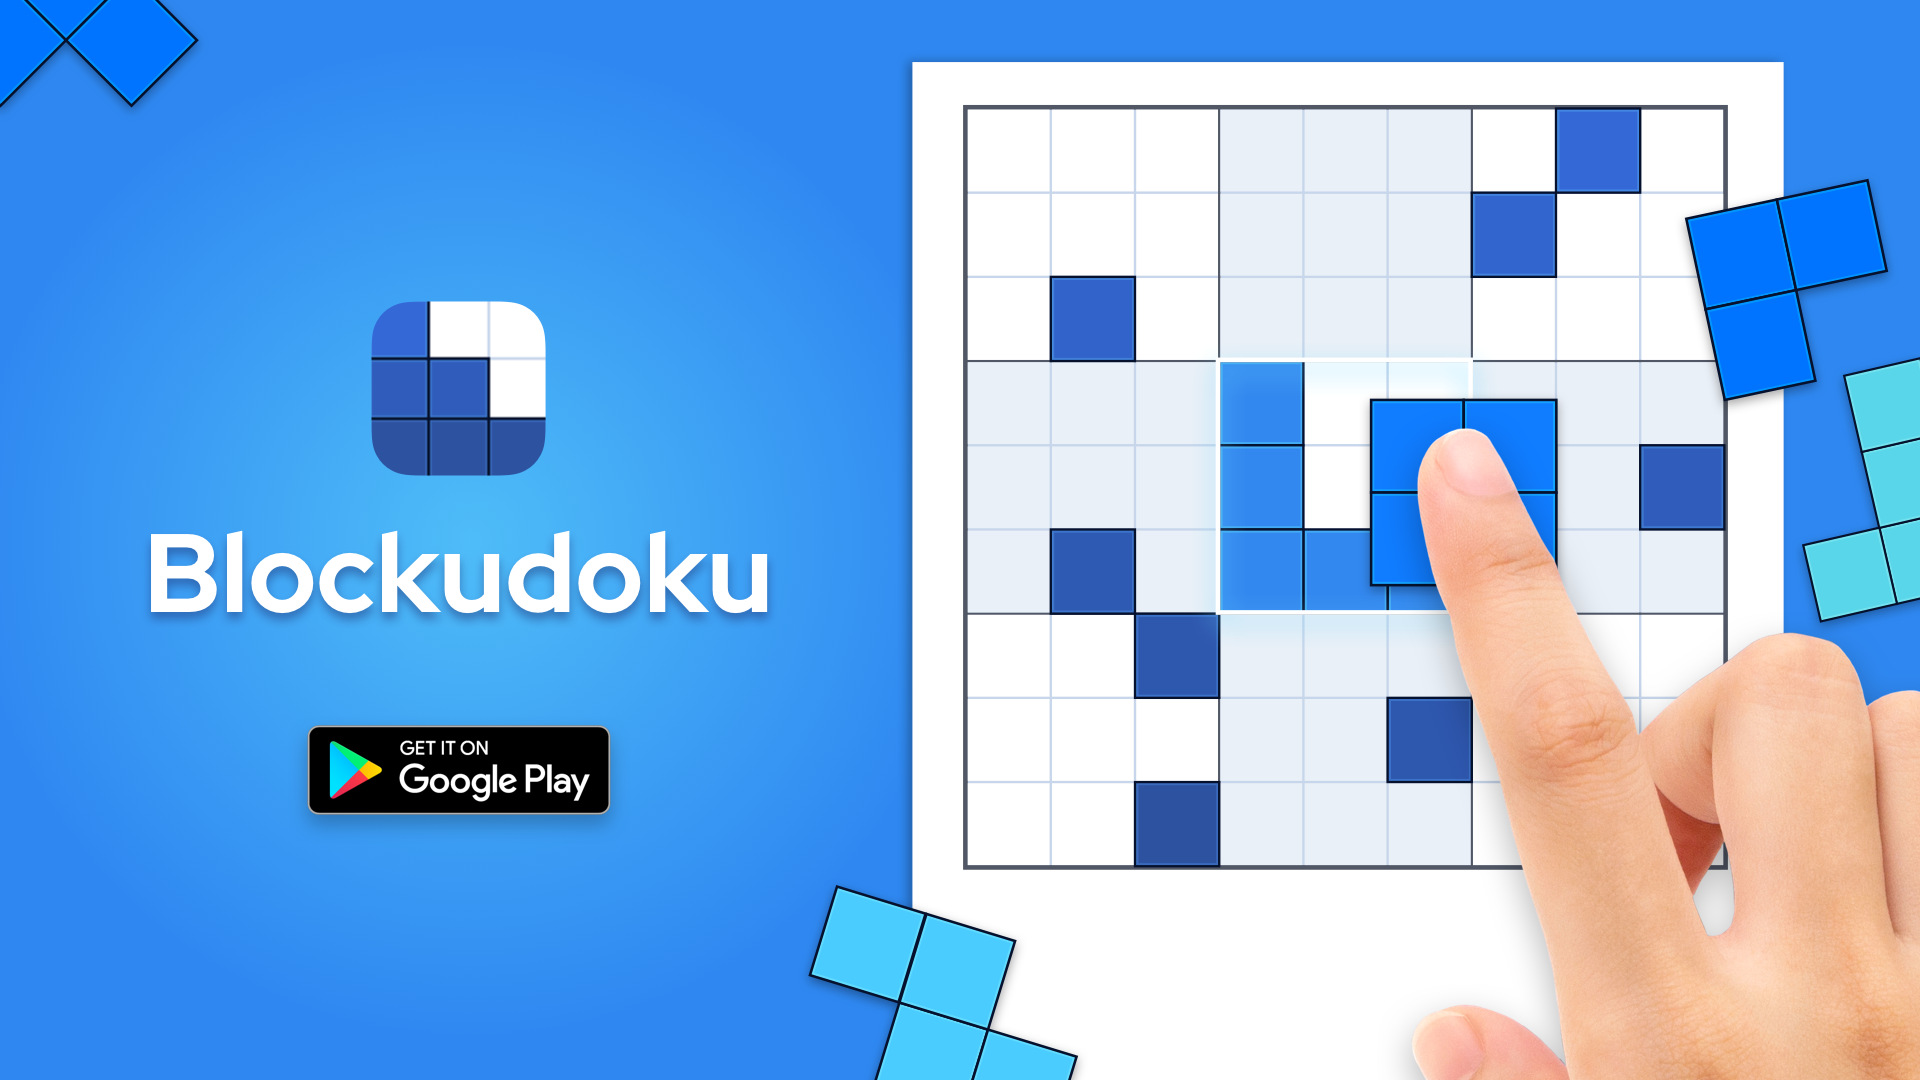 Having conquered the App Store, Blockudoku by Easybrain comes to Google Play